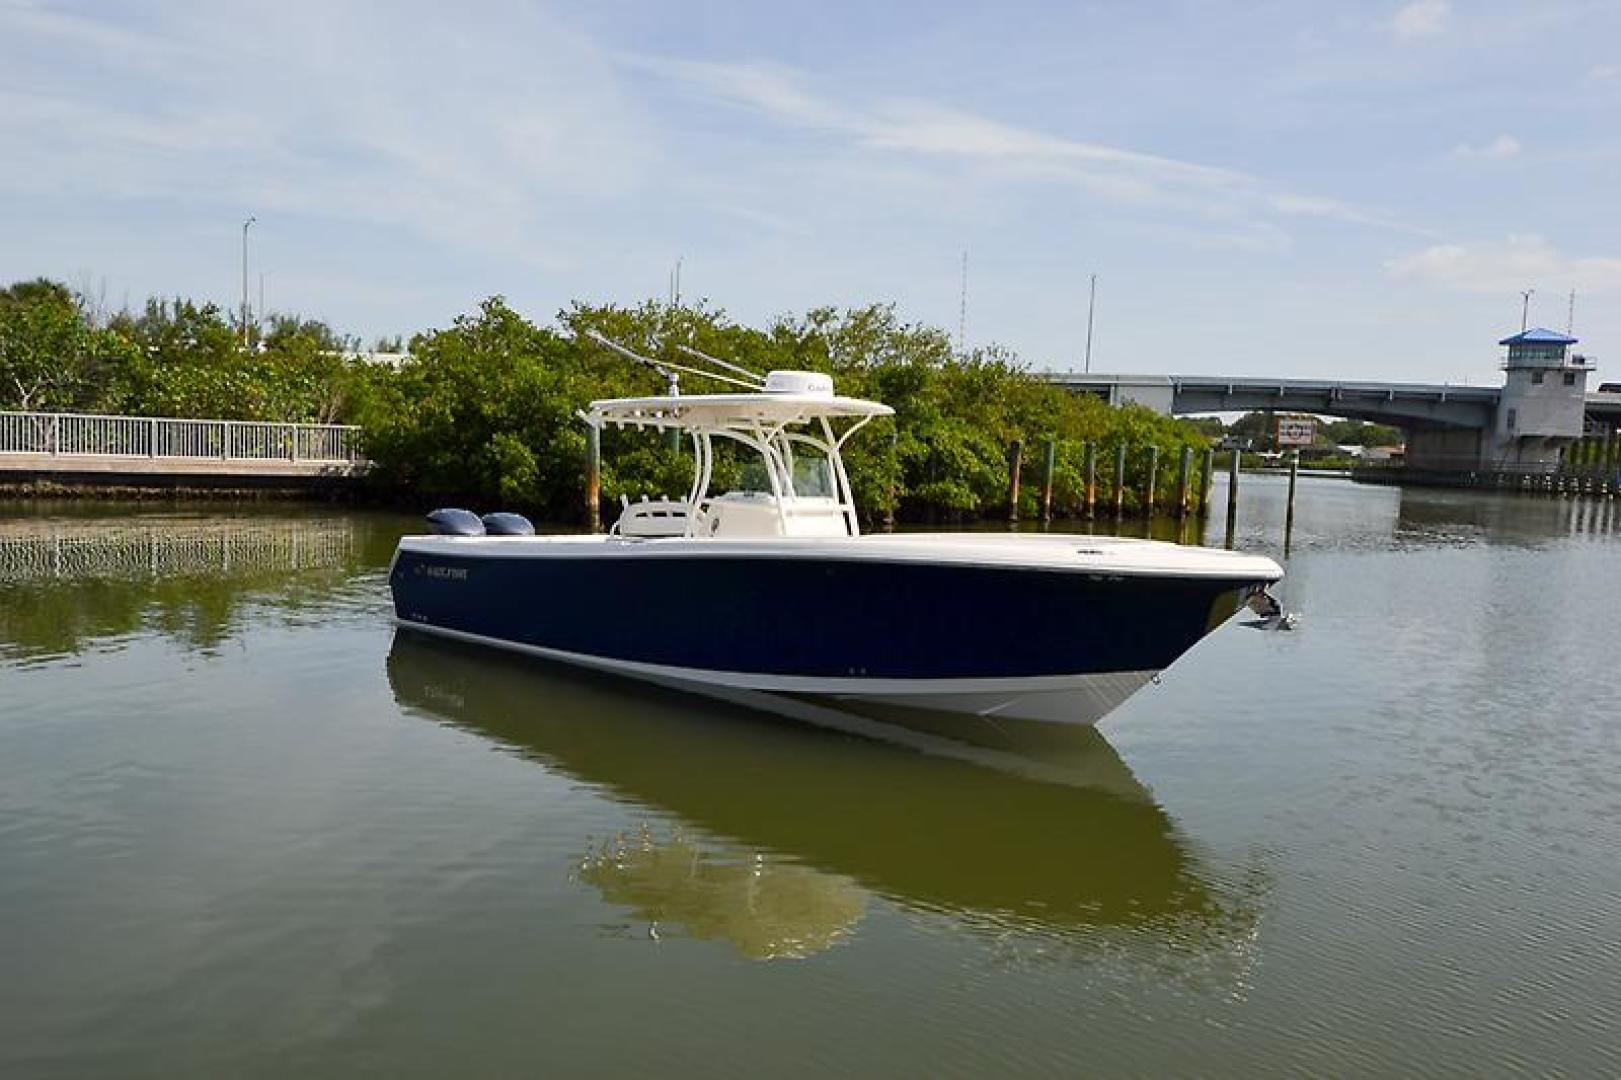 2014 Sailfish 320 cc-11.jpg